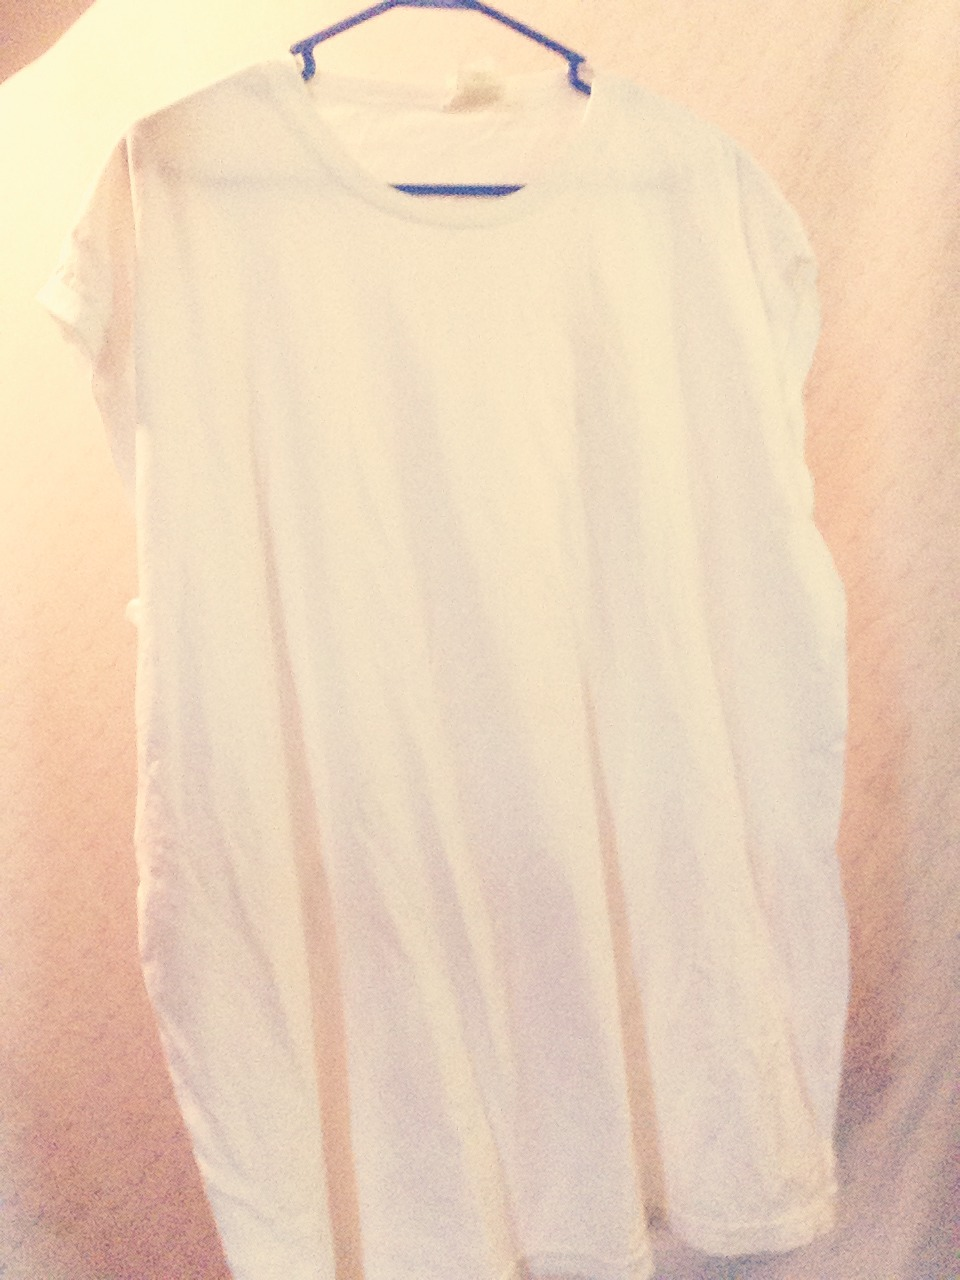 Find an old white Tee shirt.